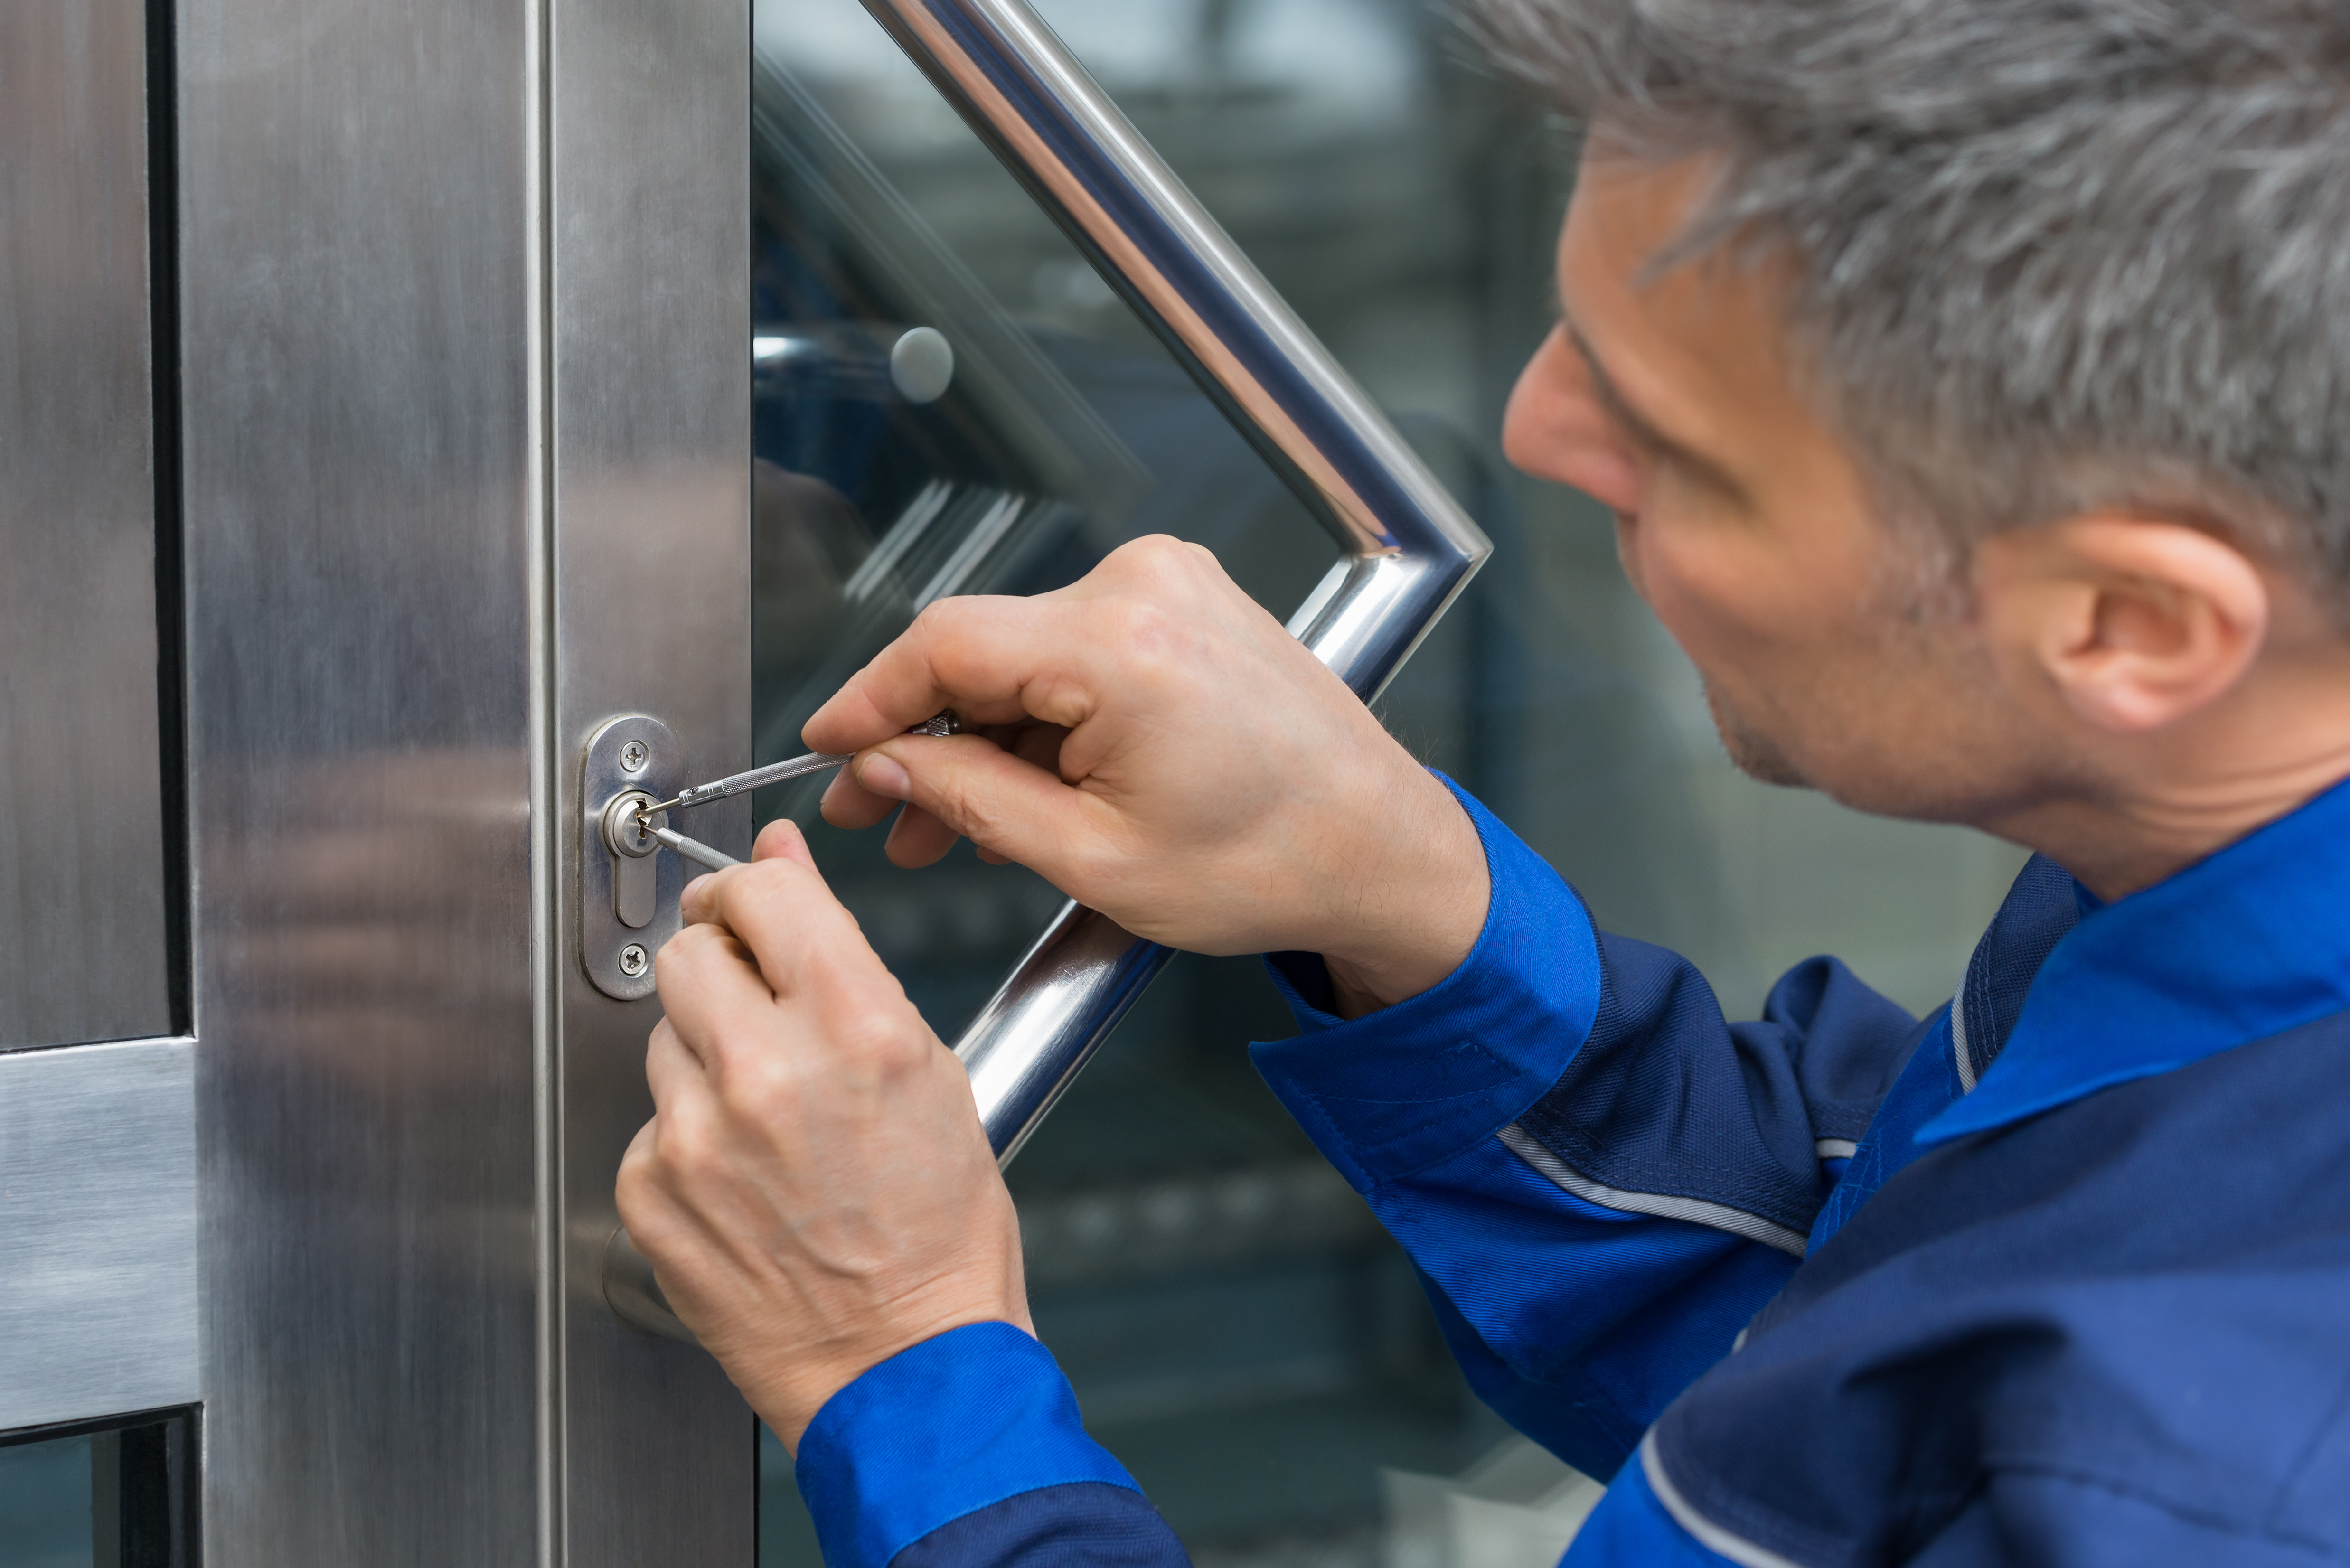 Let Me In Locksmith Announces New Management Committed To 24/7 Emergency Services